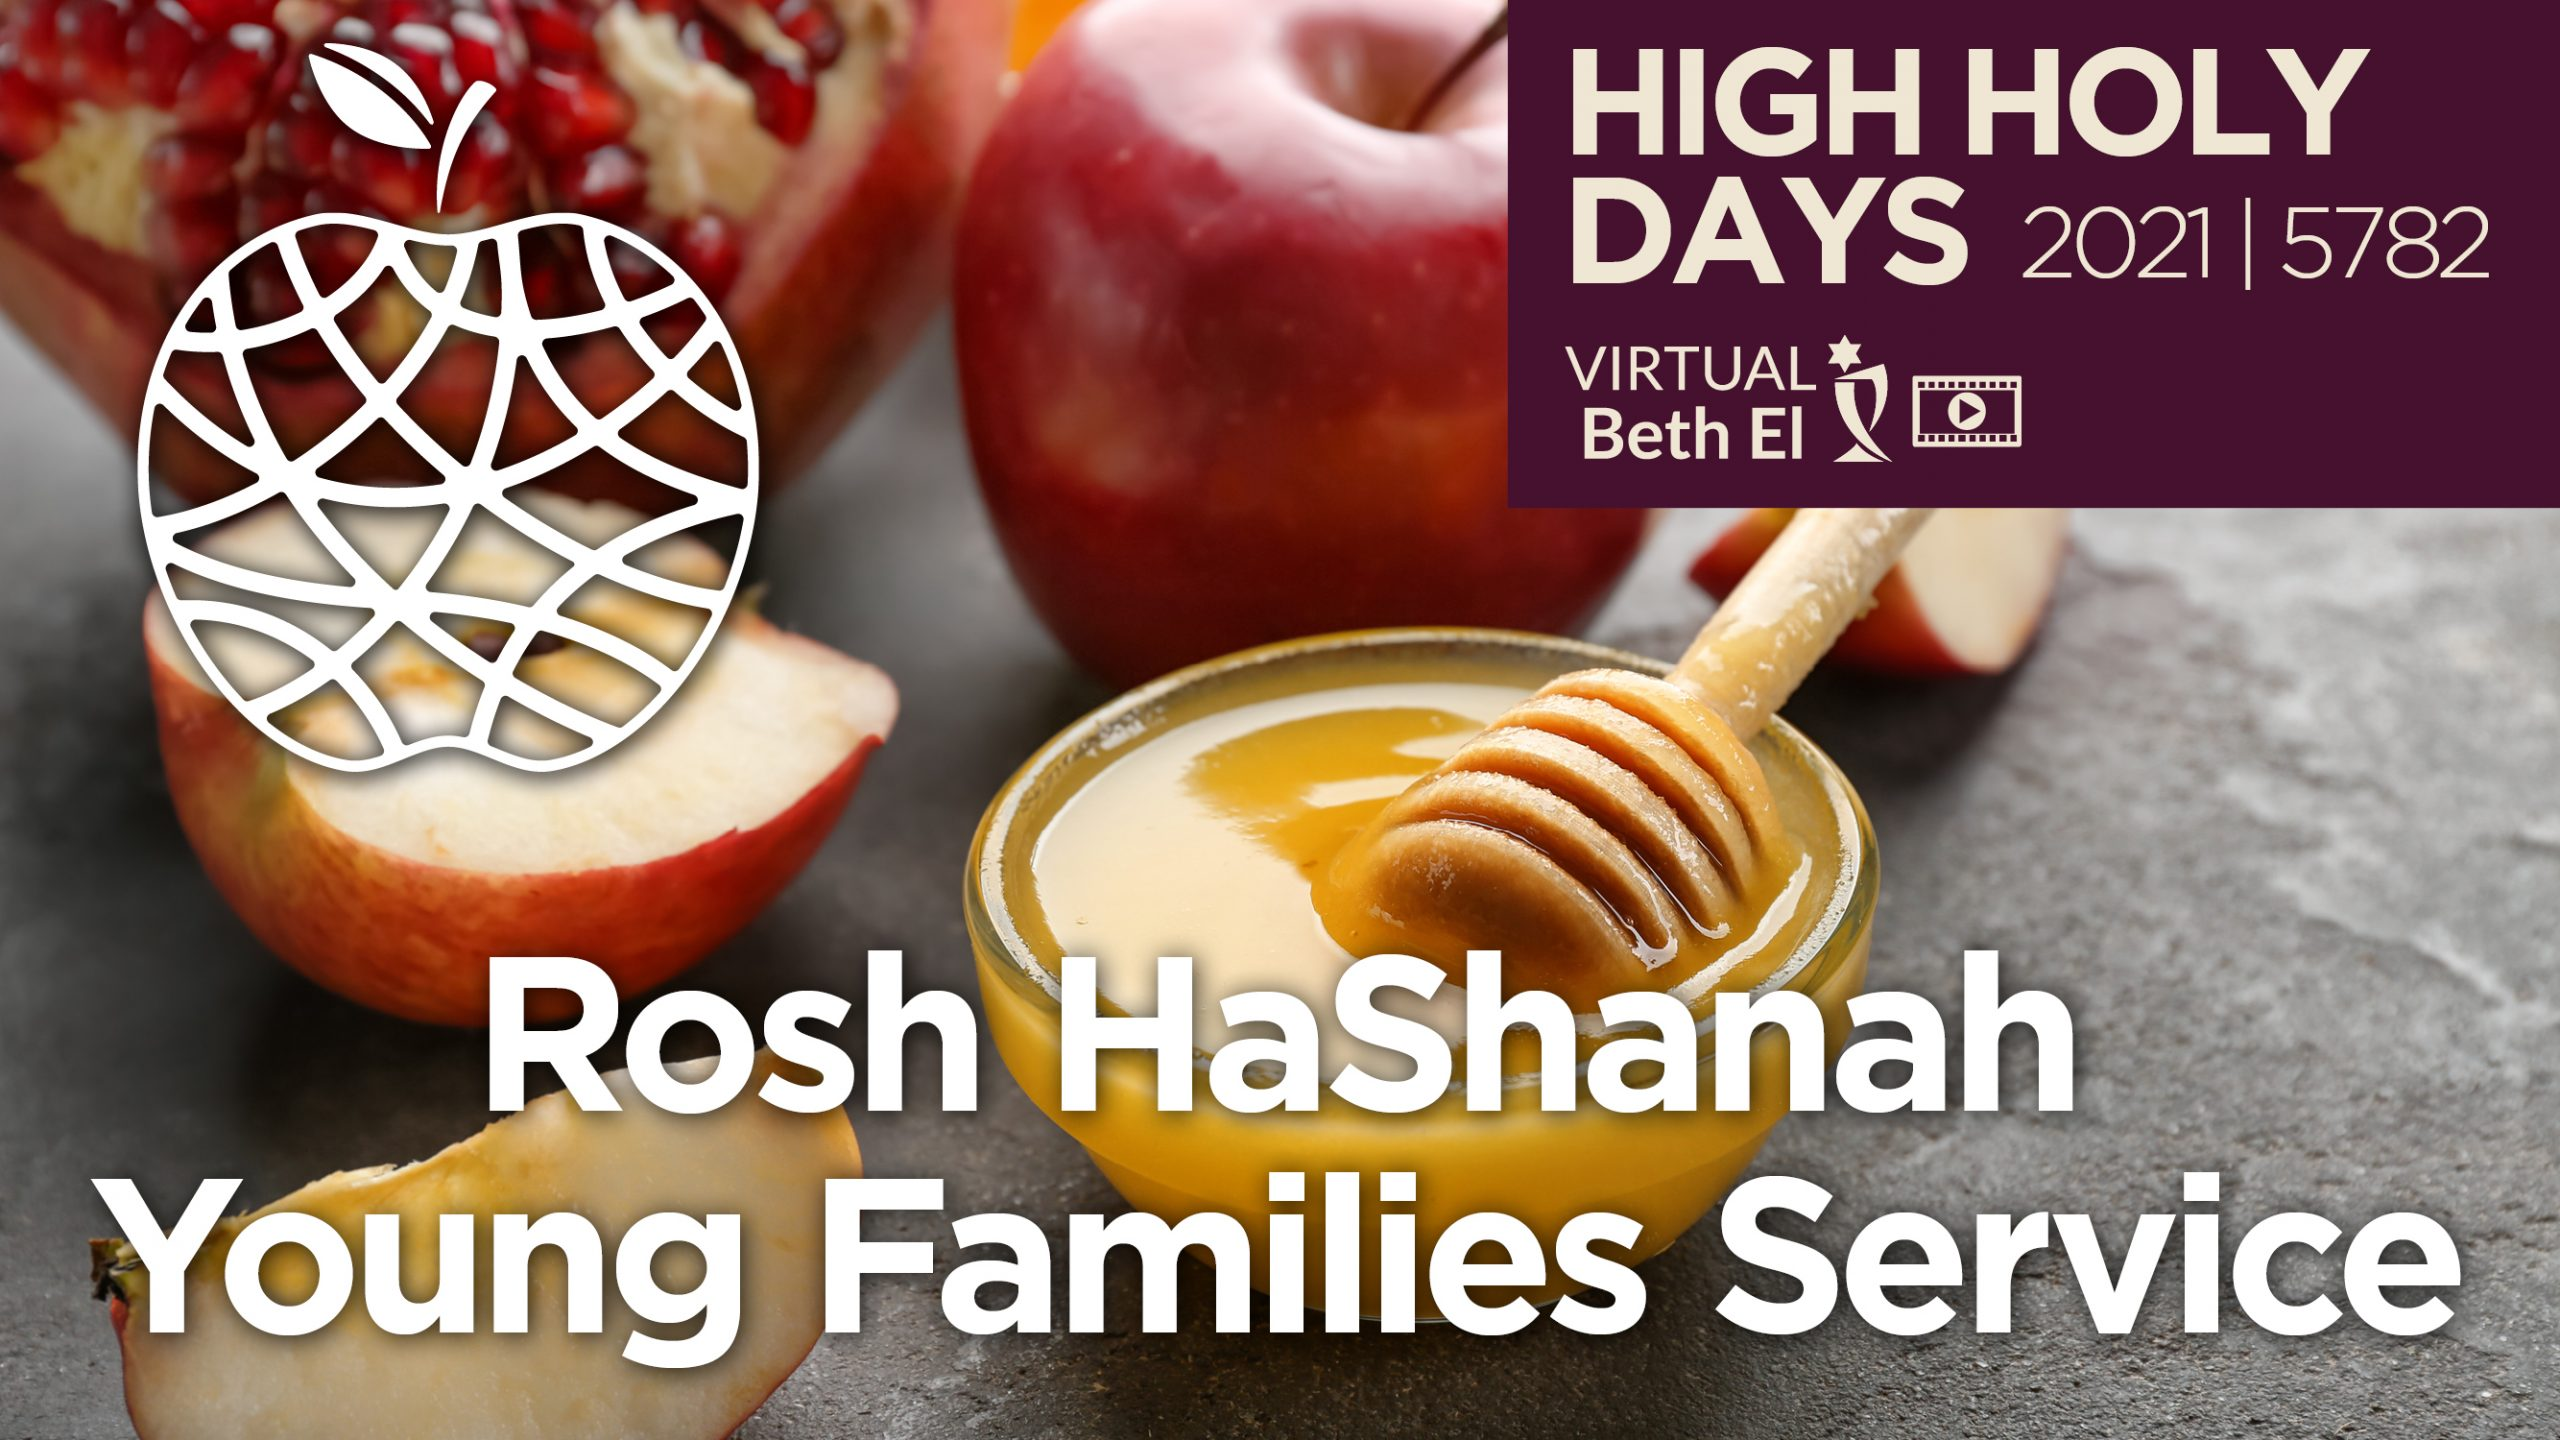 Rosh HaShanah Young Childrens Services Announcement Graphic for 2021 5782